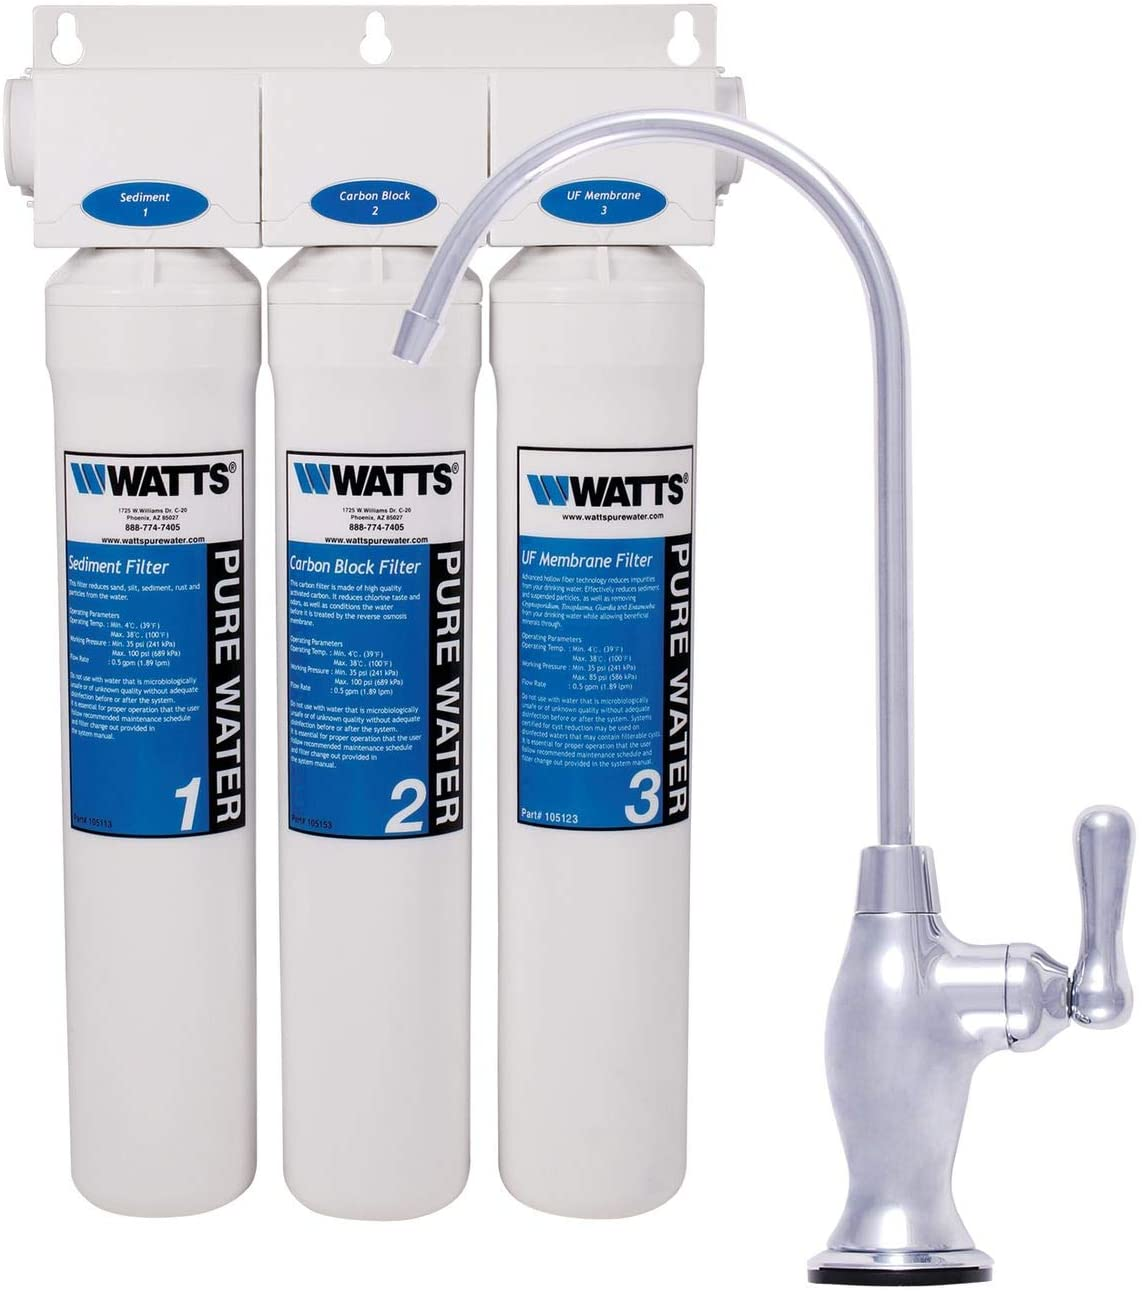 Watts Kwik-Change 3-stage Ultra Filtration Drinking Water System